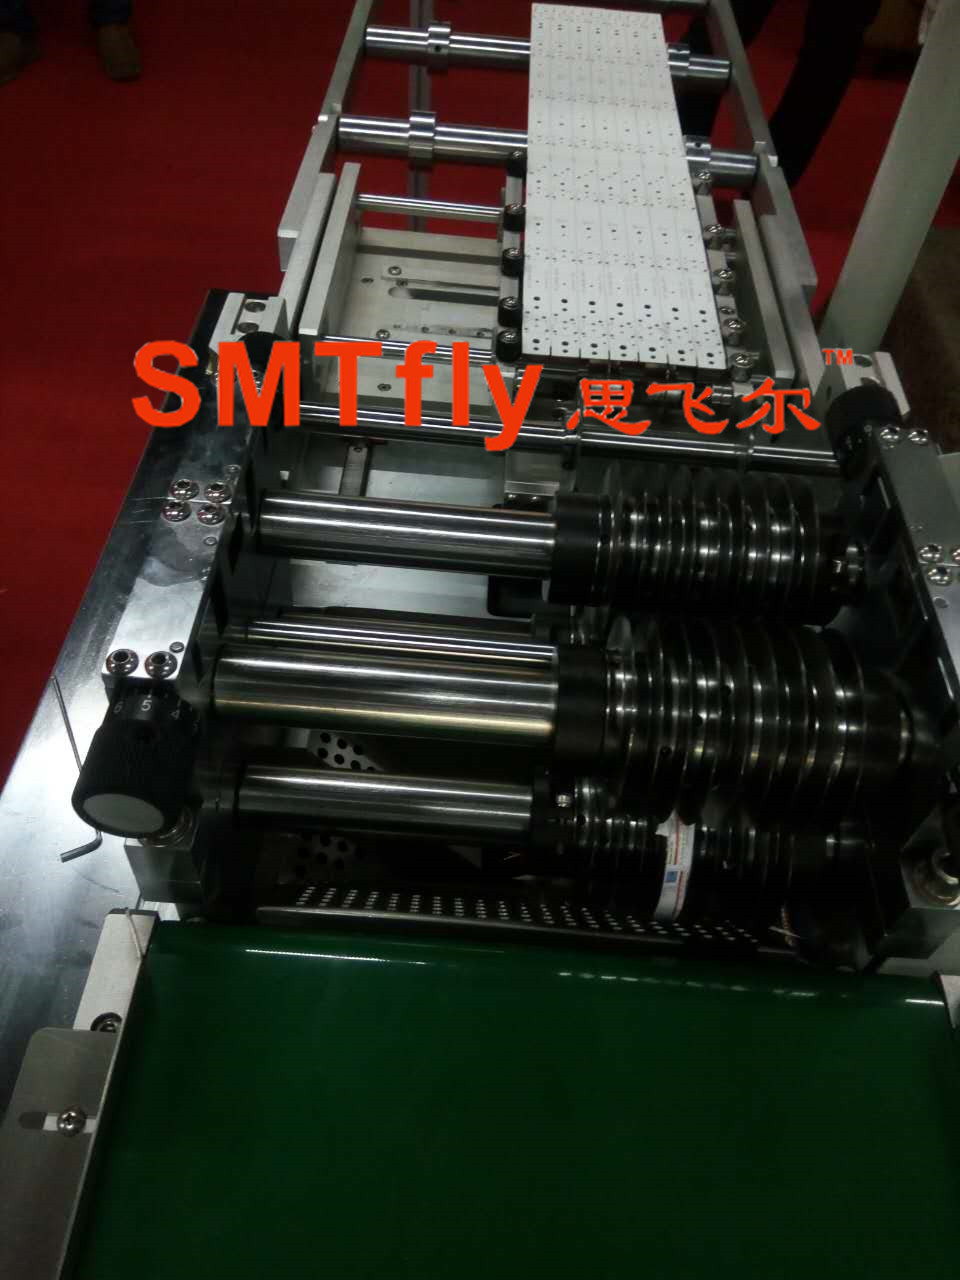 multiple groups of blades pcb separator,SMTfly-5